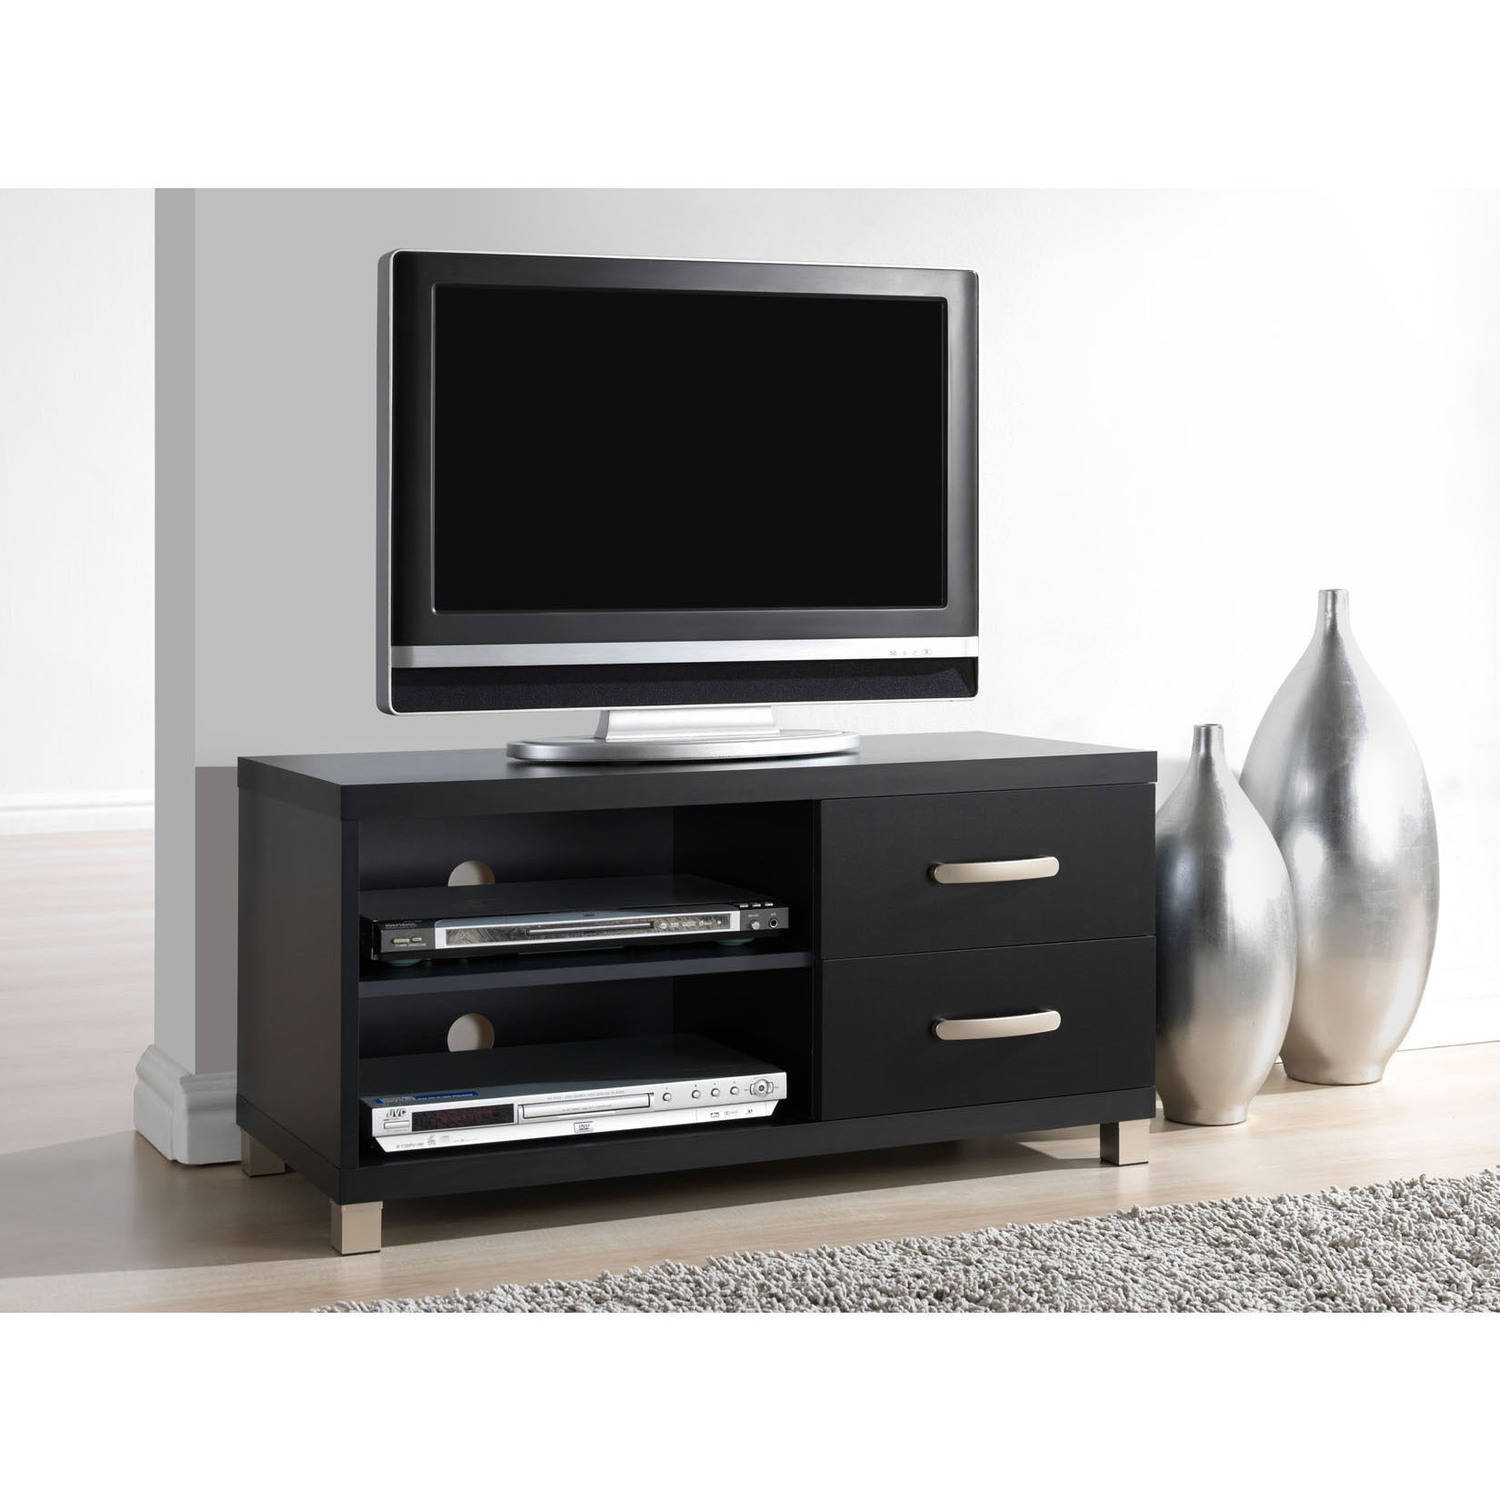 Techni Mobili 2 Drawer TV Cabinet, Black